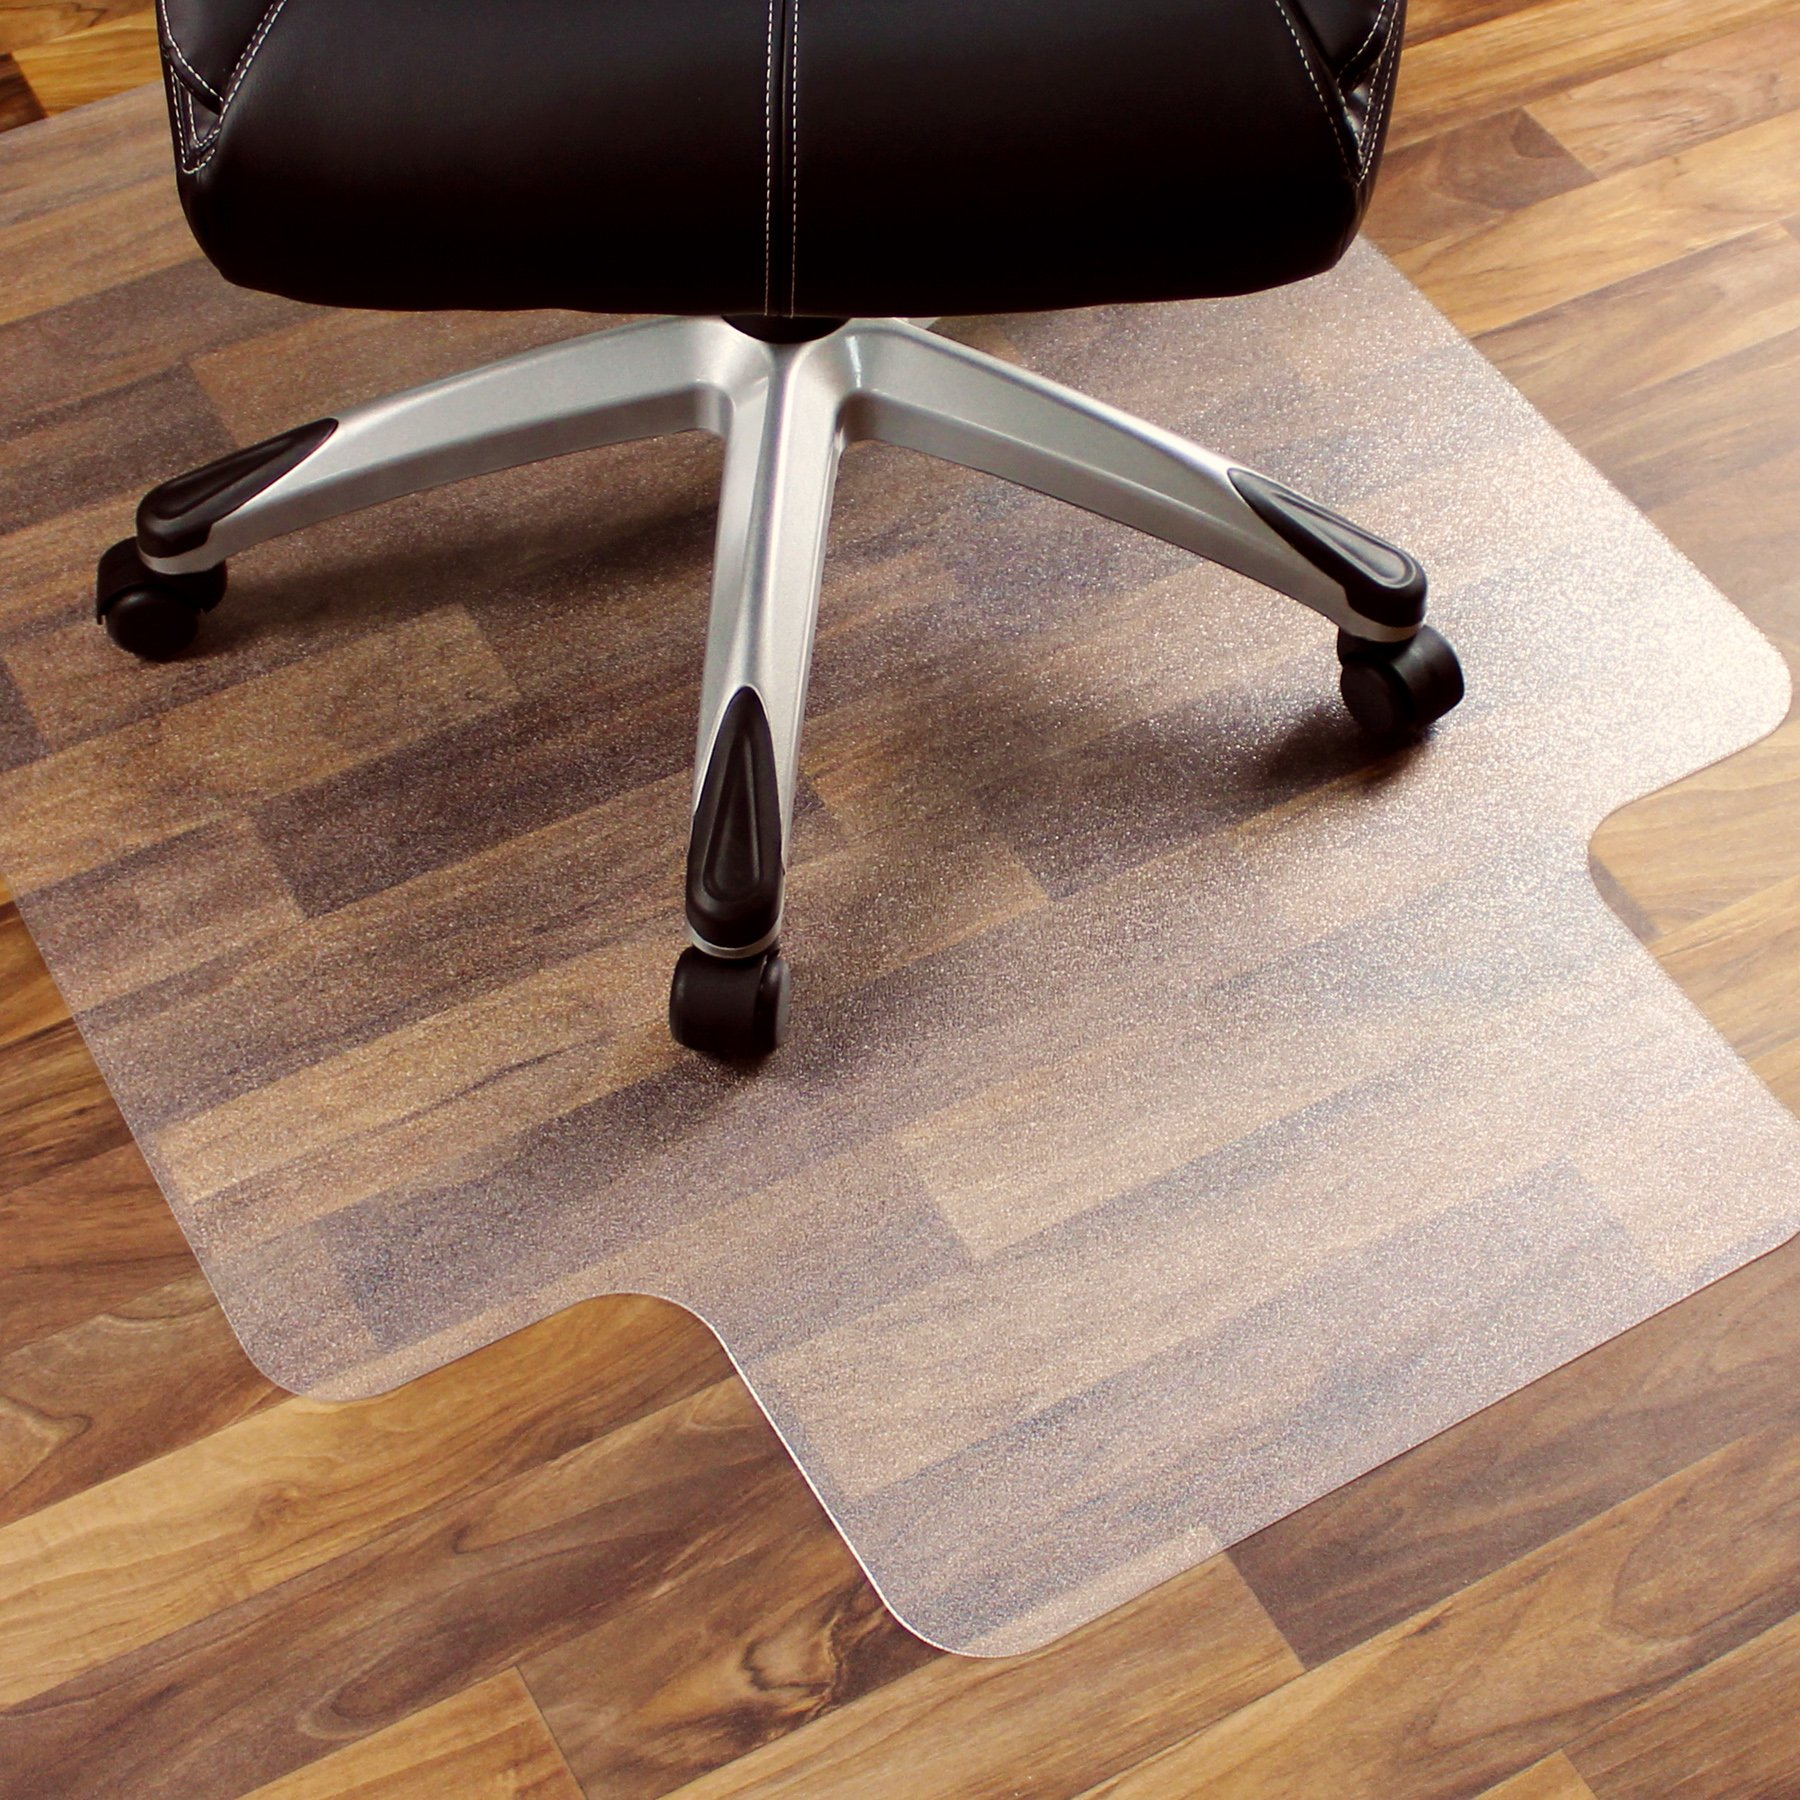 Marvelux 36'' x 48'' Heavy Duty Polycarbonate (PC) Lipped Chair Mat for Hard Floors | Transparent Hardwood Floor Protector | Pack of 2 by Marvelux